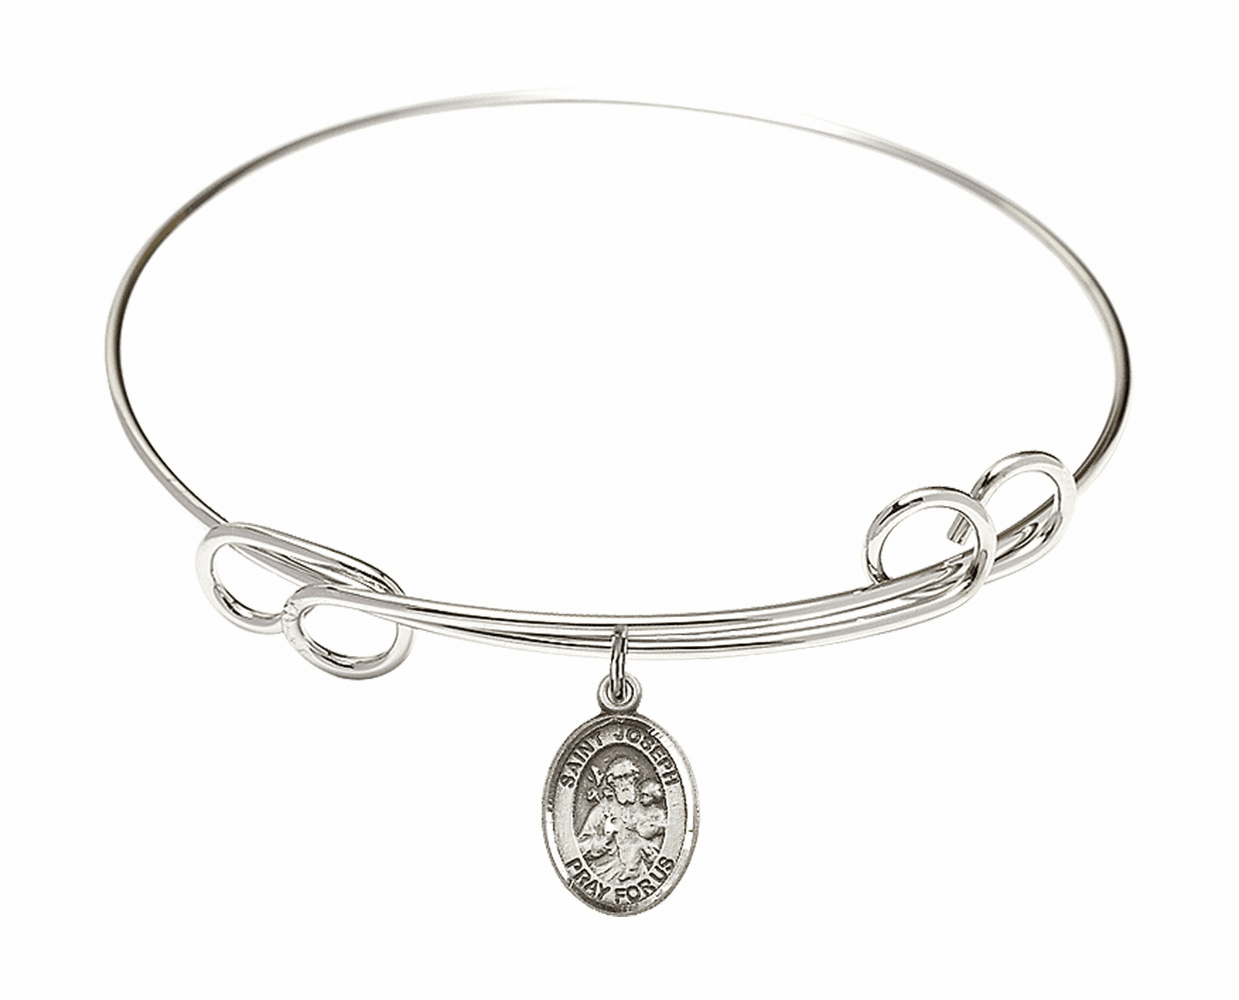 Round Loop St Joseph Bangle Charm Bracelet by Bliss